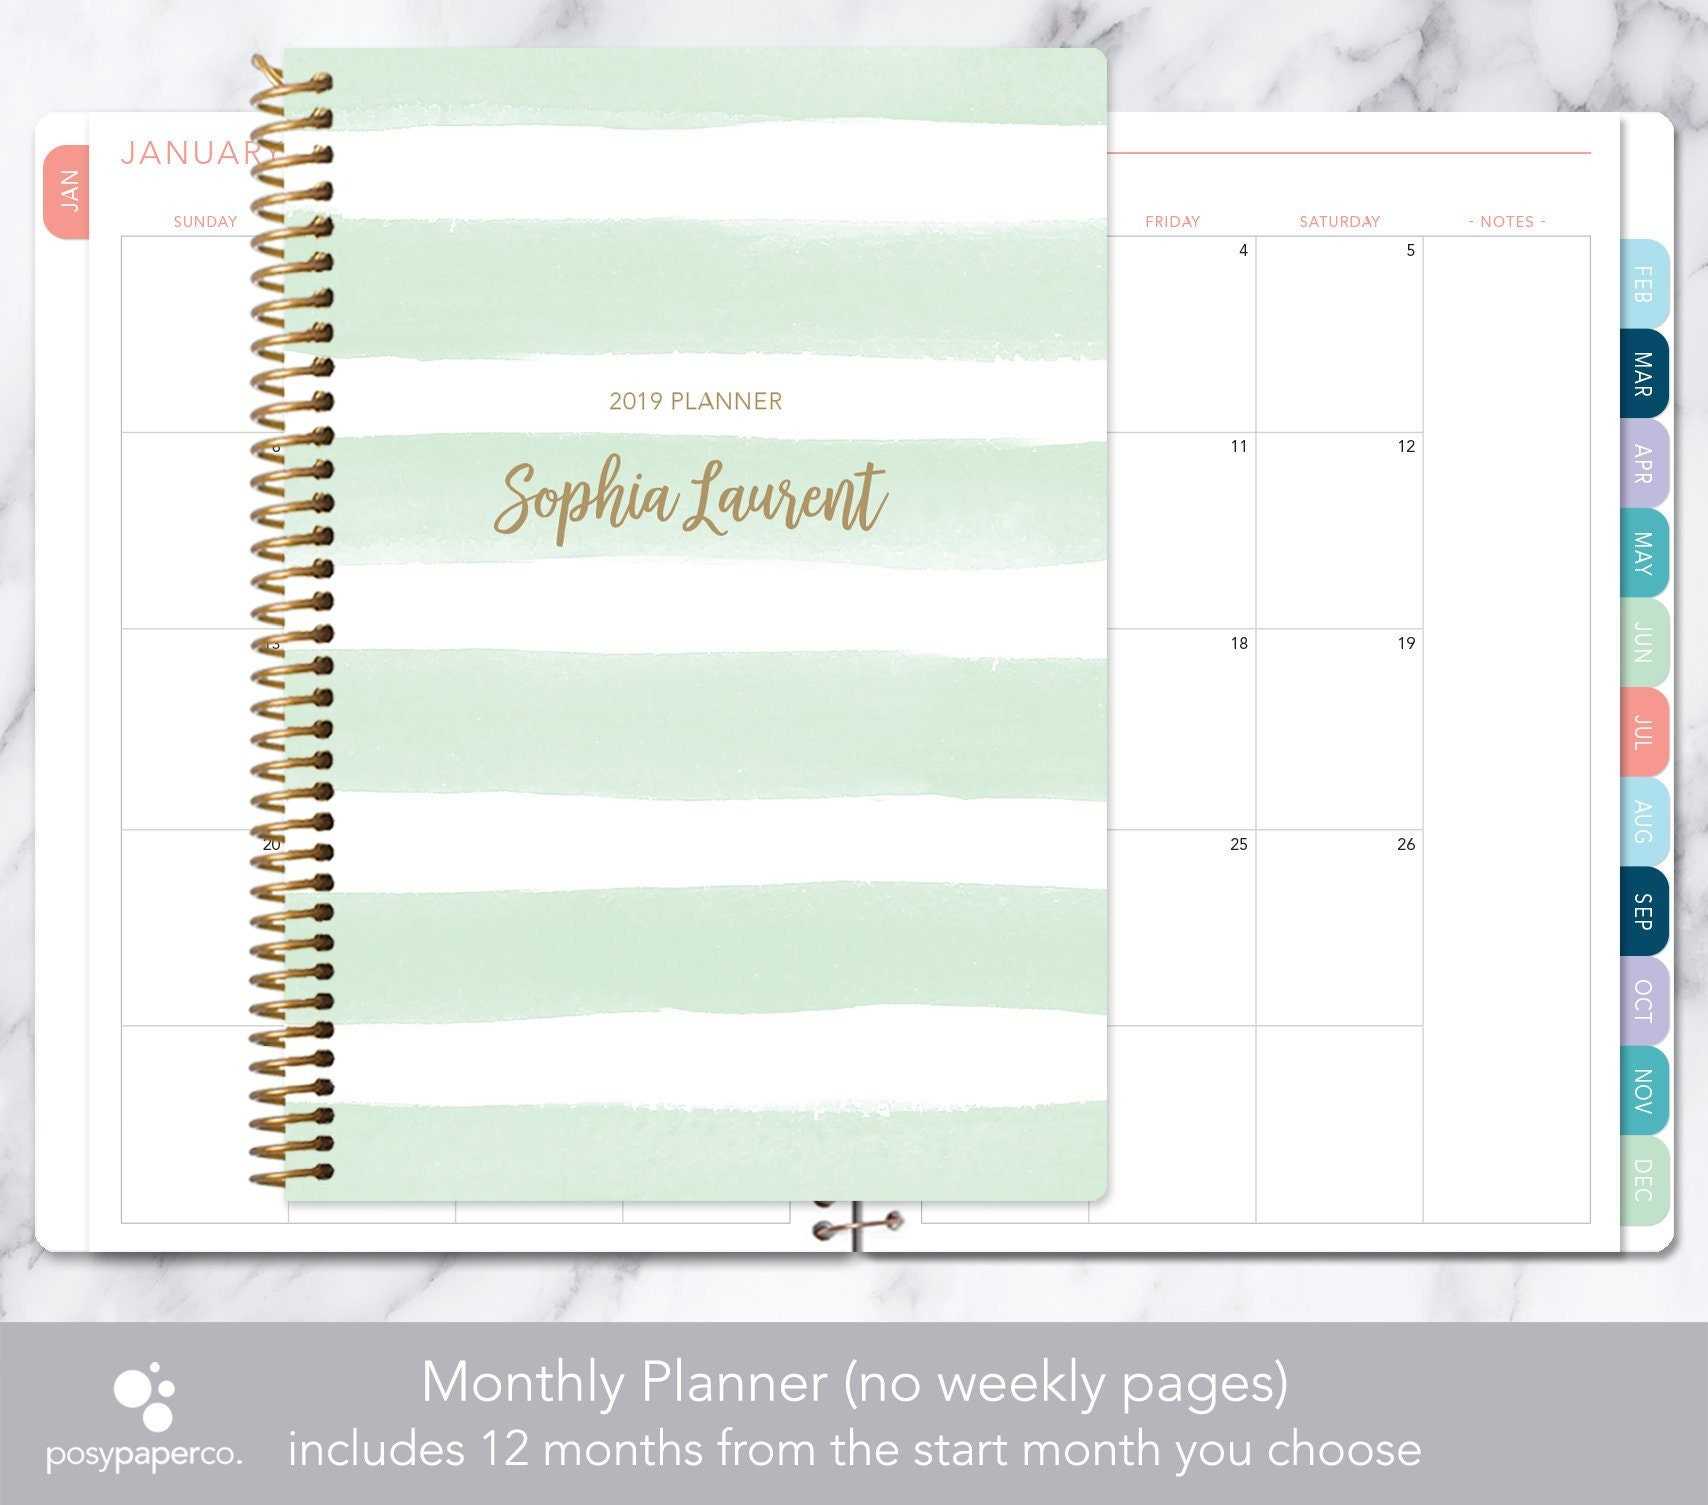 50 Graduation Commence Mints 2019 Or 2020 Graduation: MONTHLY PLANNER 2019 2020 No Weekly View Choose Your Start